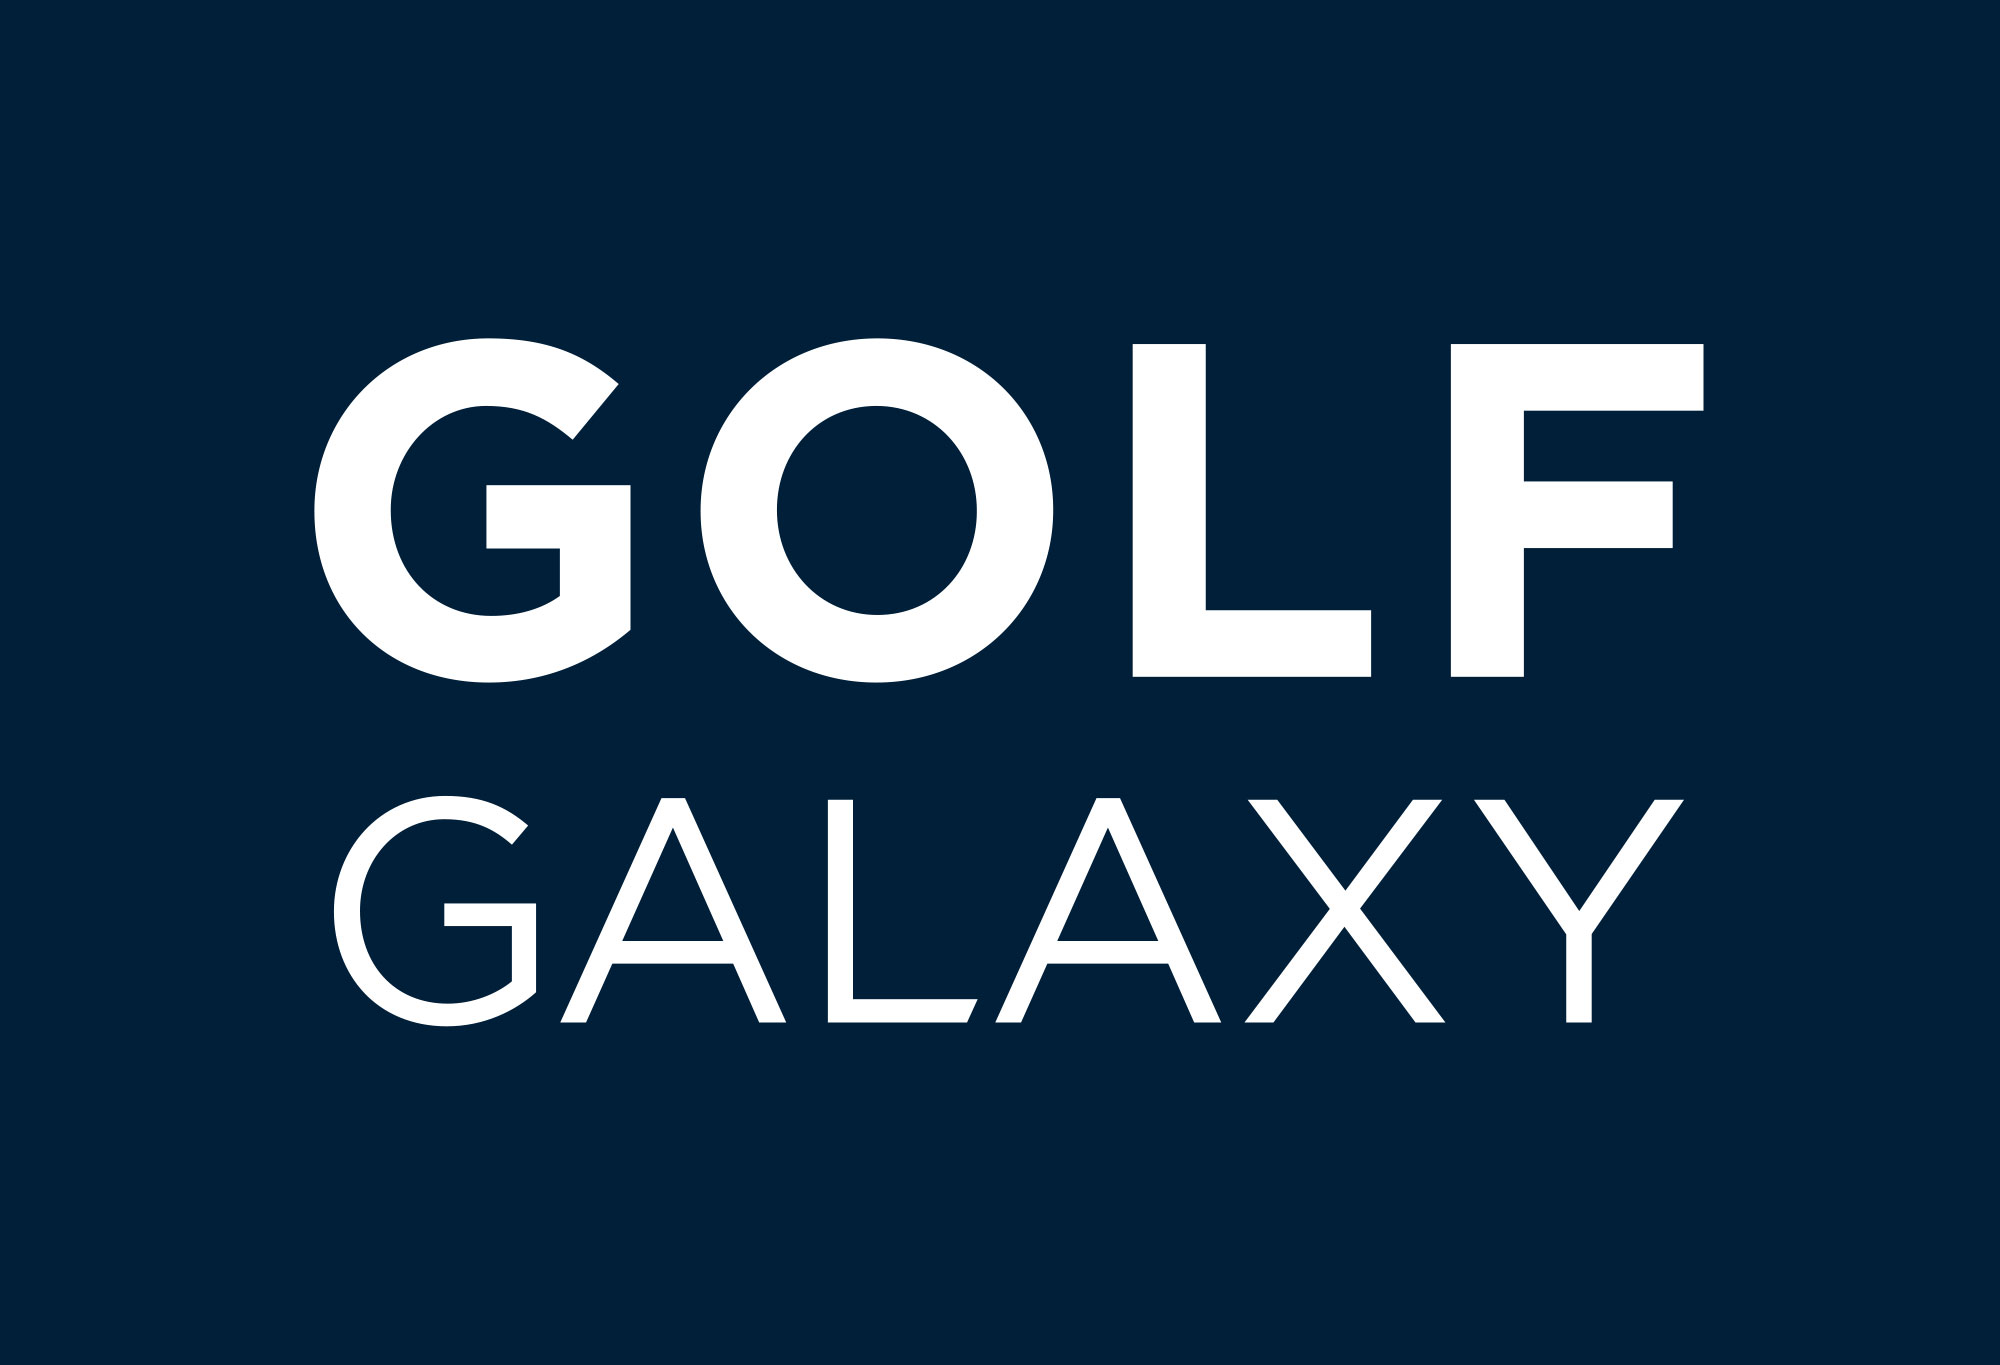 Storefront of Golf Galaxy store in Glen Allen, VA